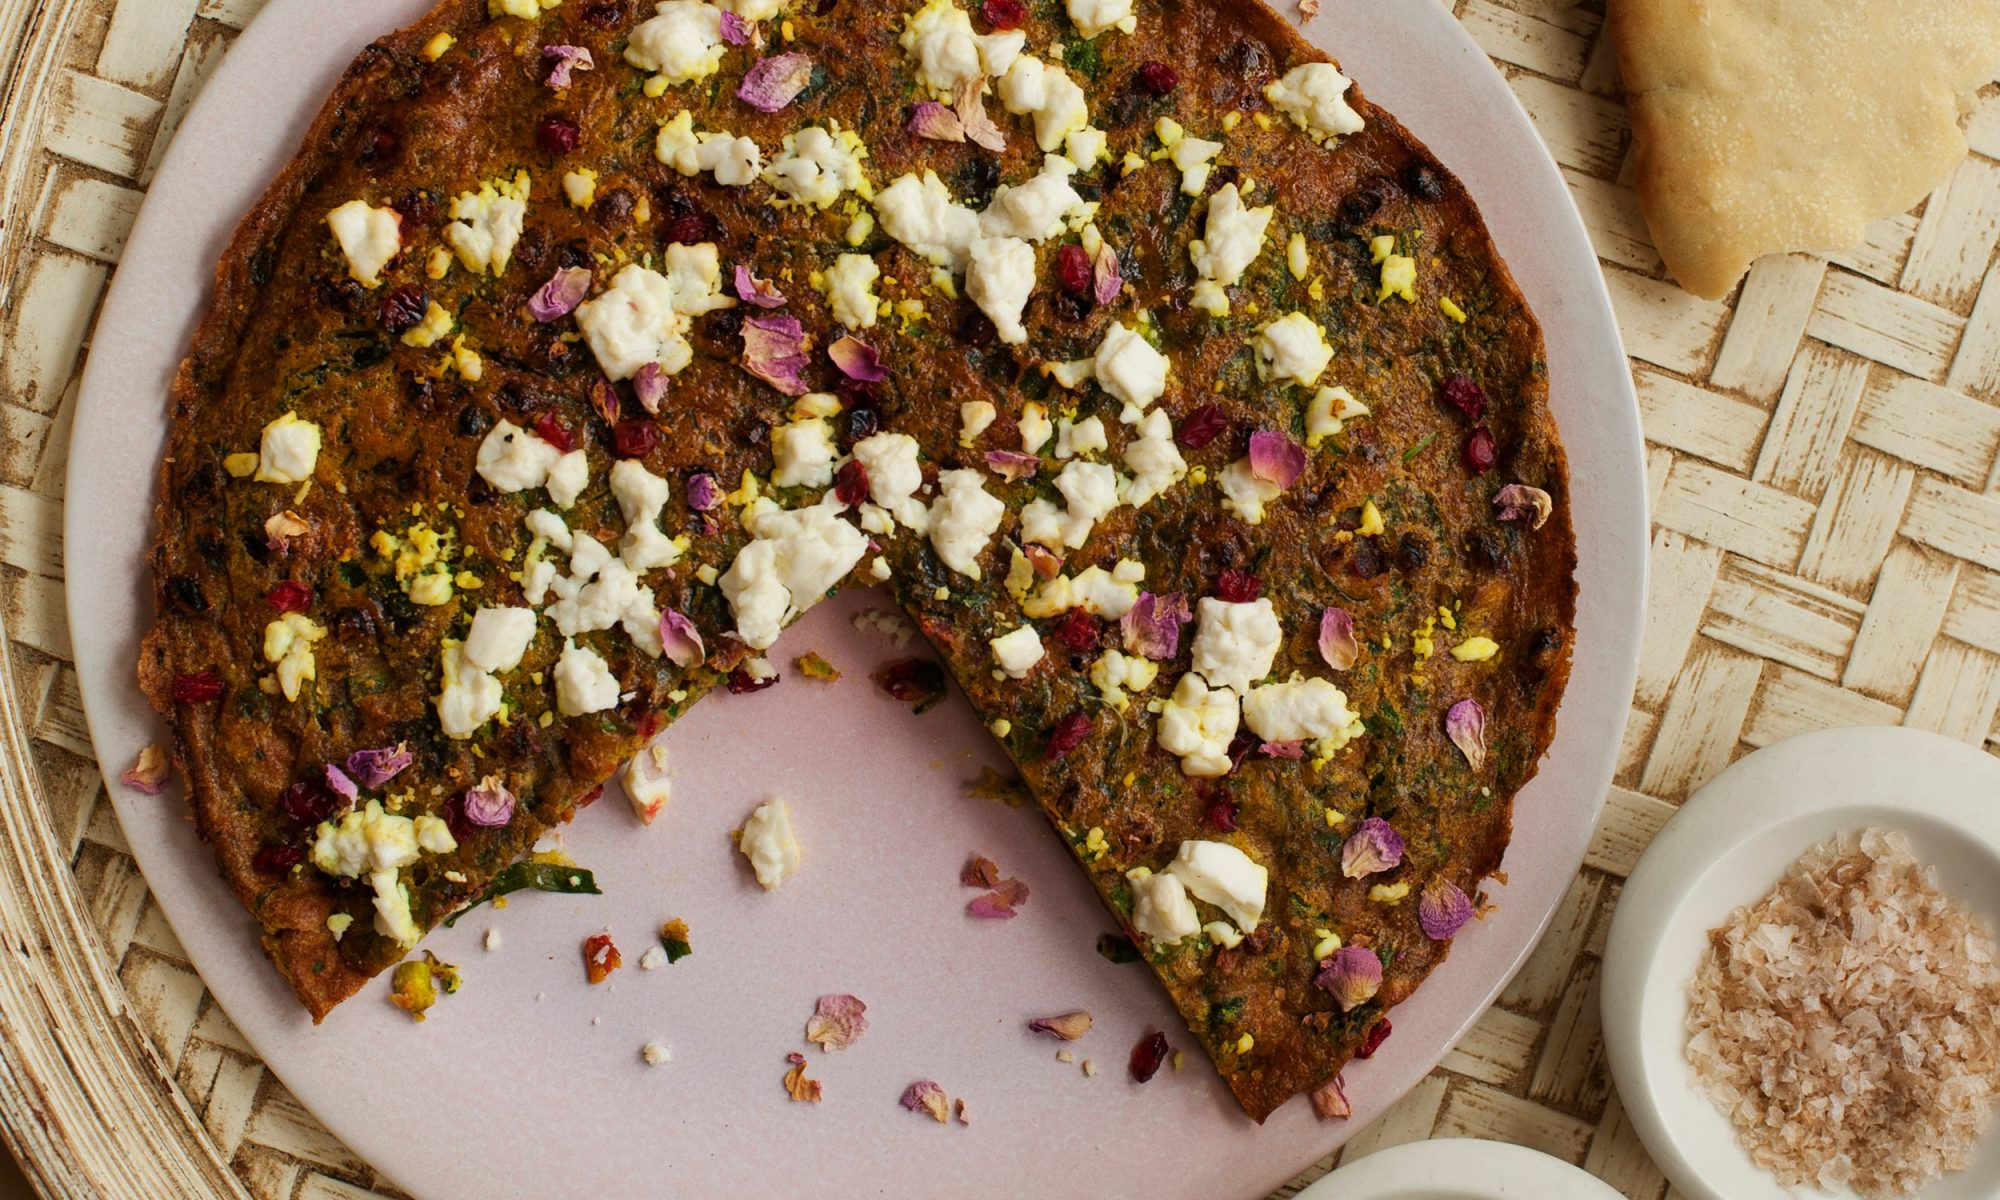 Go Green with a Persian Herb Omelet